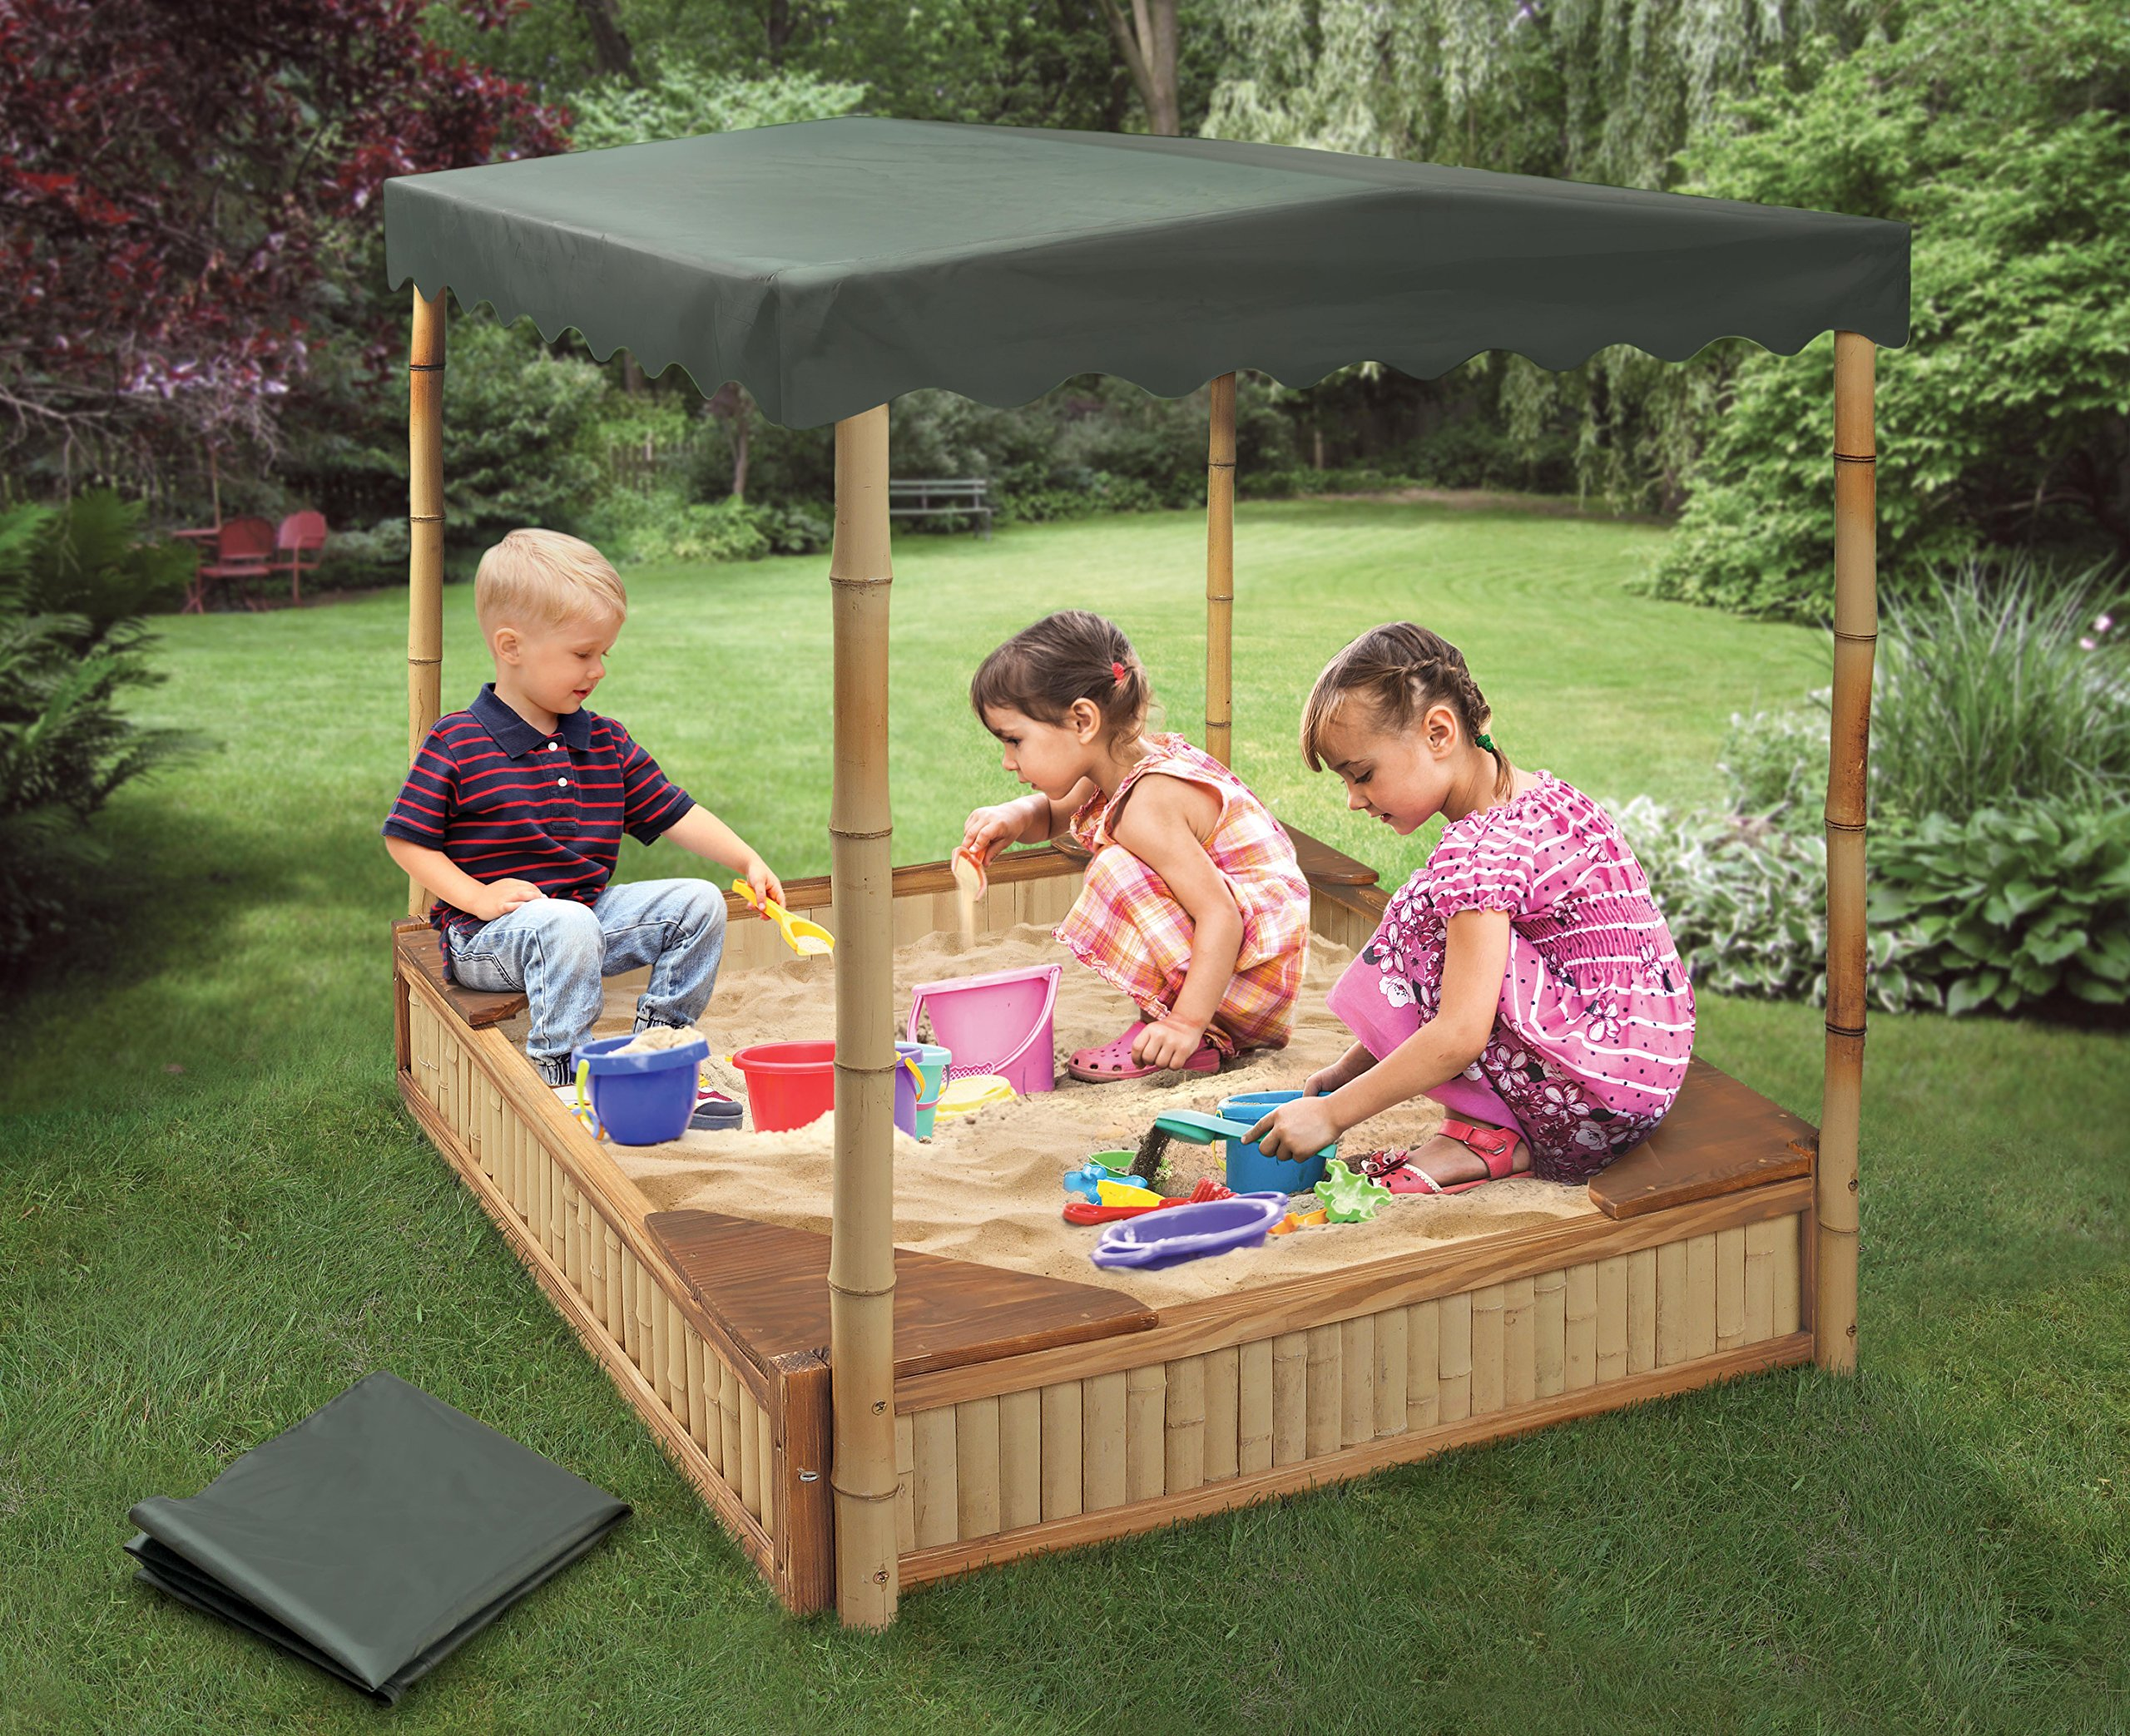 Badger Basket Tropical Fun Square Bamboo/Wood Outdoor Sandbox with Fabric Canopy/Cover and Seats, Natural/Green by Badger Basket (Image #2)